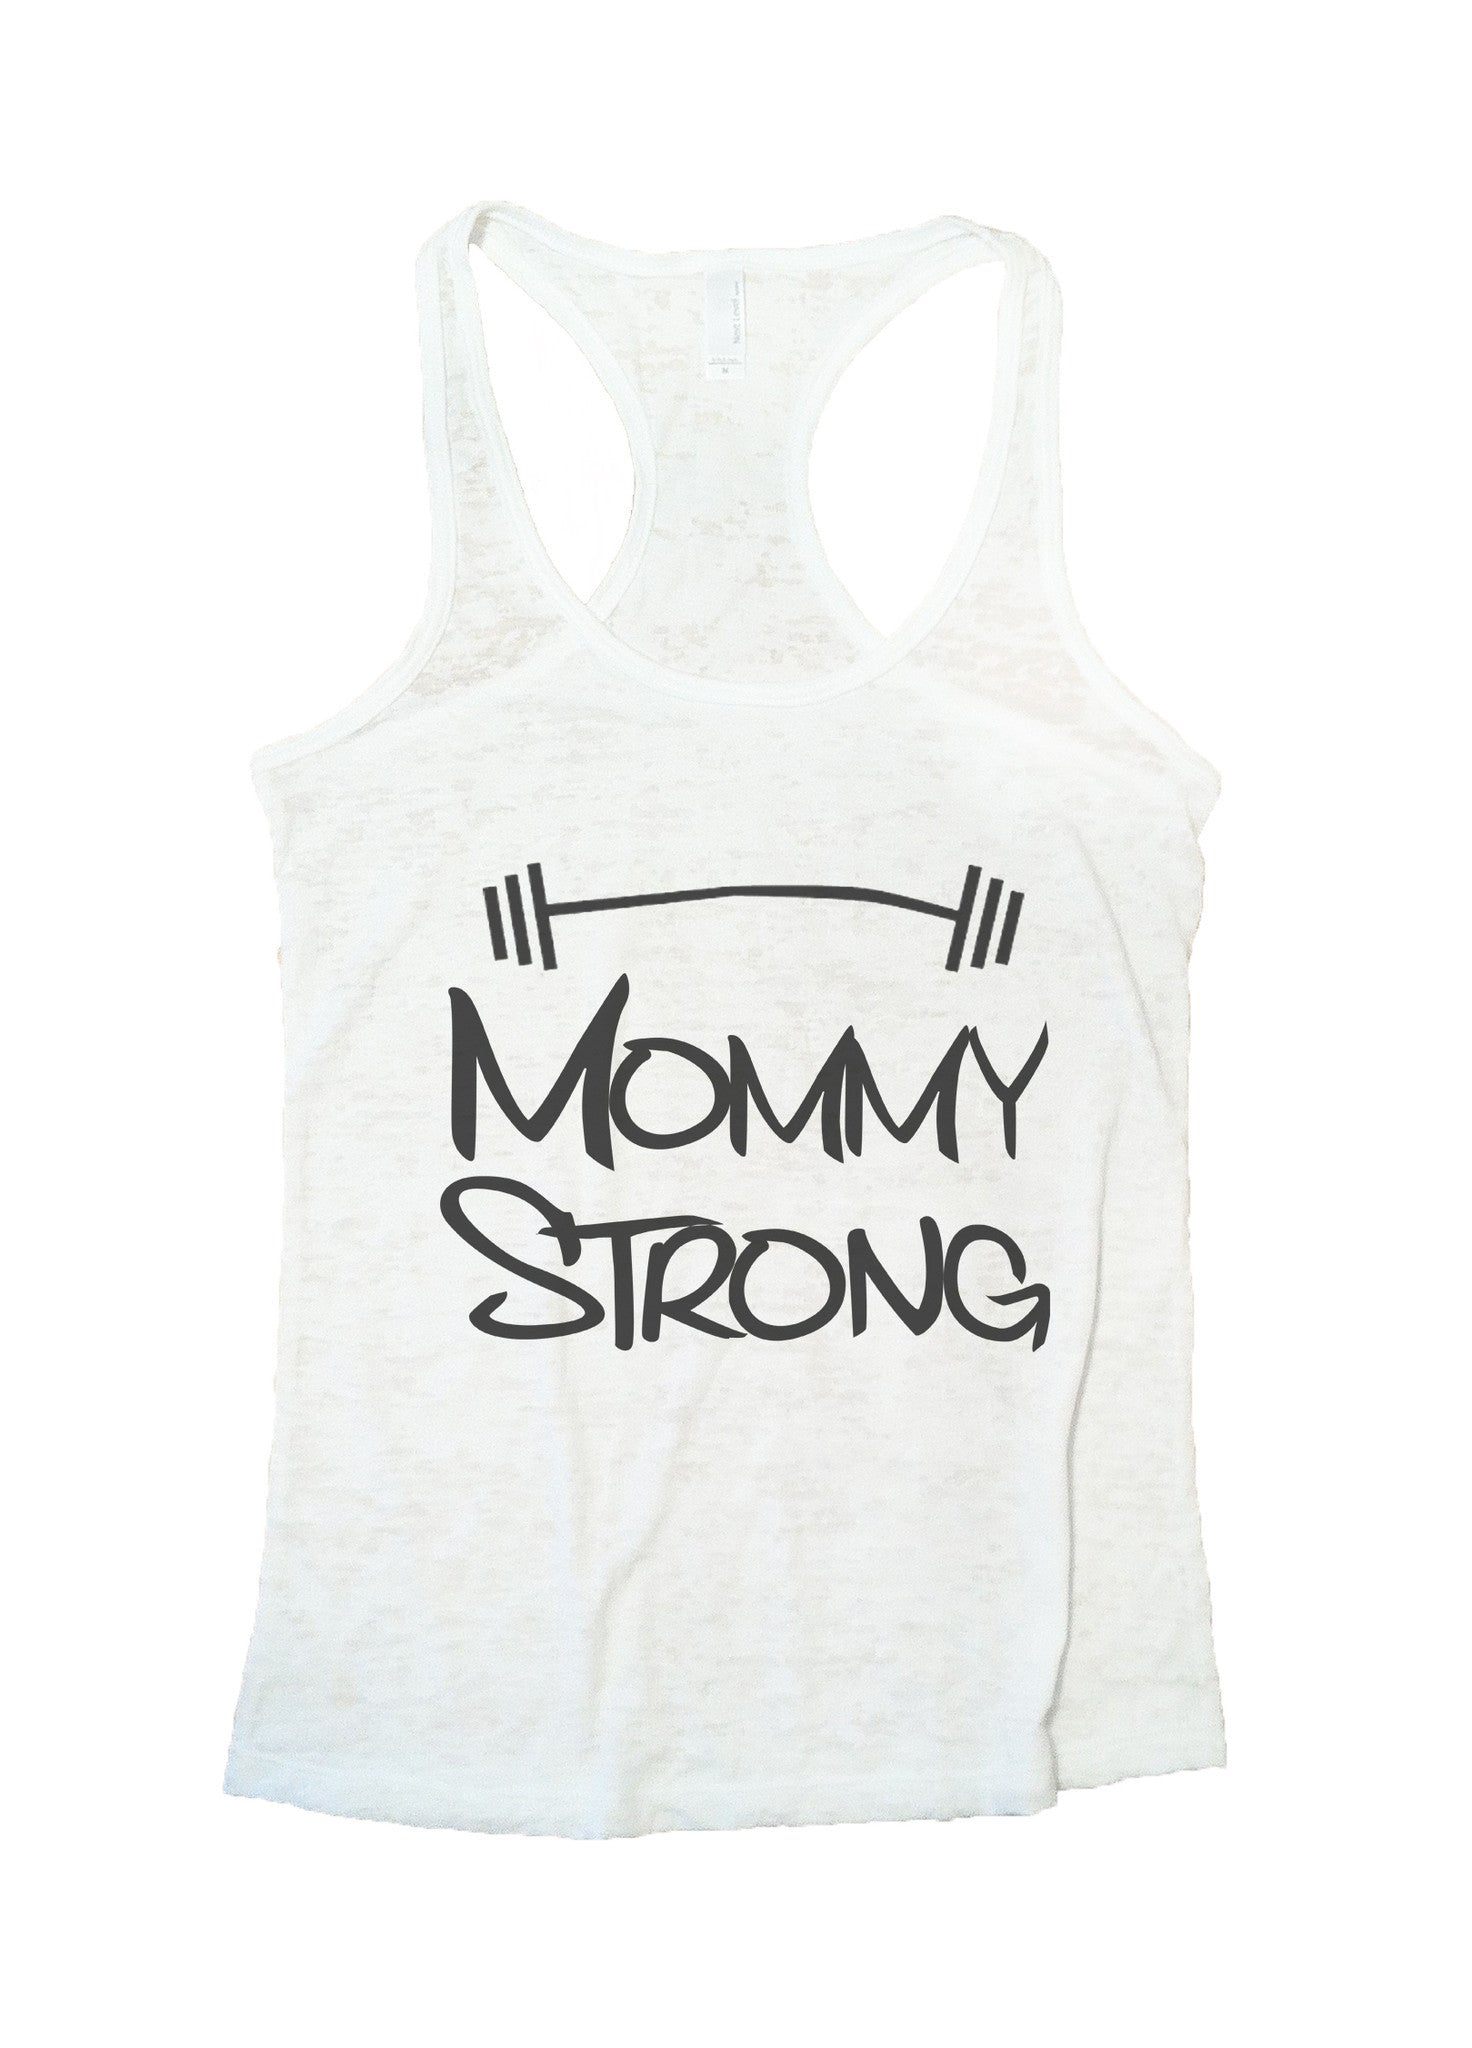 Mommy Strong Mothers Motivational Burnout Tank Top By BurnoutTankTops.com - 515 - Funny Shirts Tank Tops Burnouts and Triblends  - 5